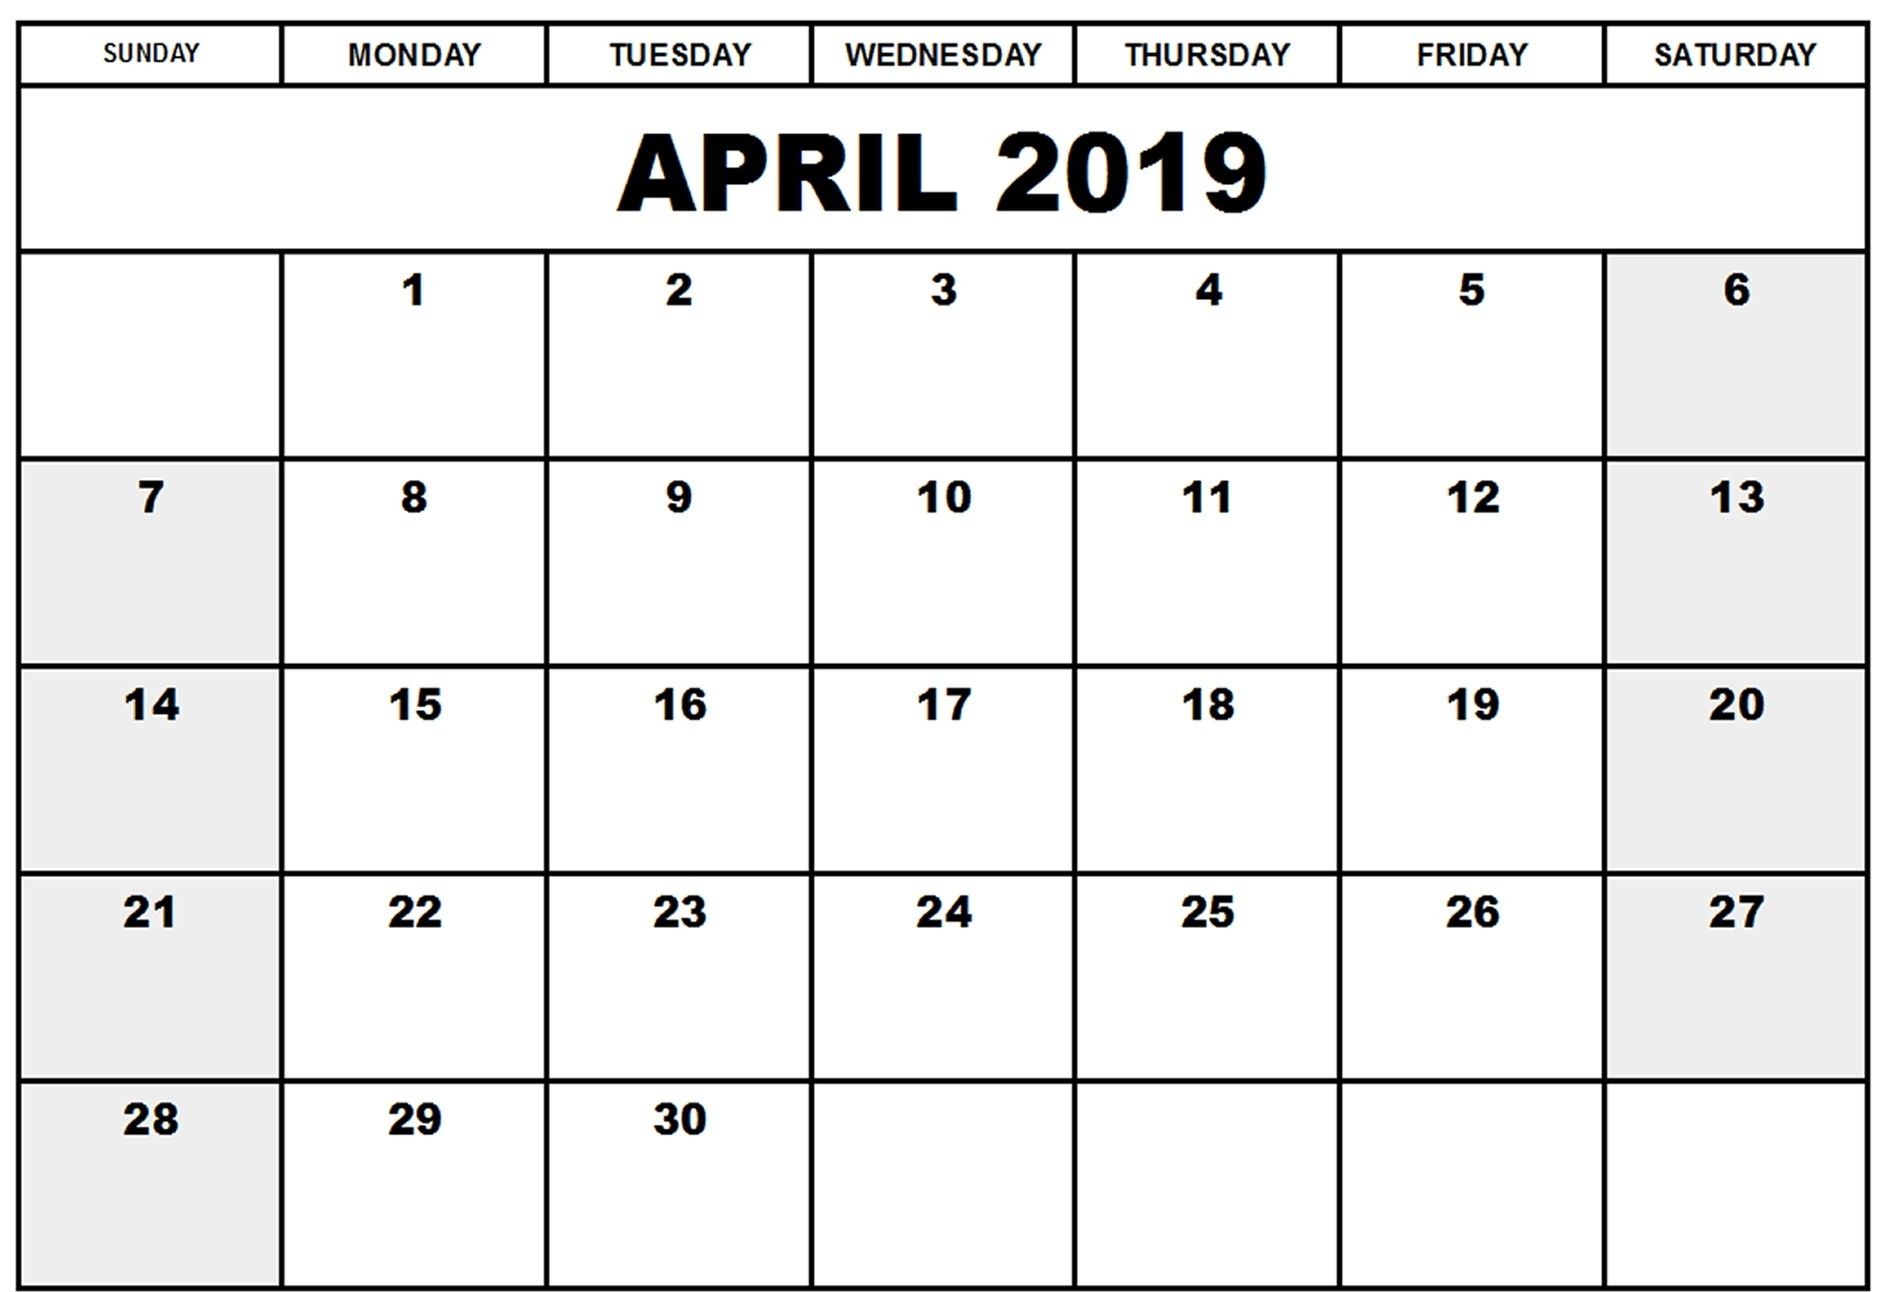 2019 March Calendar Telugu Más Reciente Calender 2019 April Telugu Of 2019 March Calendar Telugu Más Populares 12 Month Calendar 2019